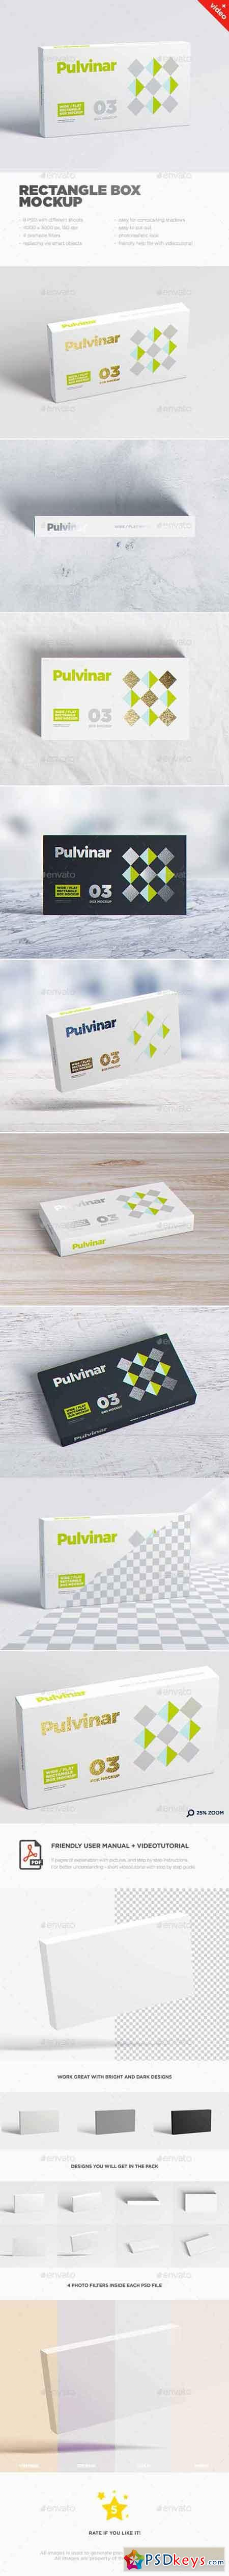 Box Packaging MockUp - Wide Flat Rectangle 17626095